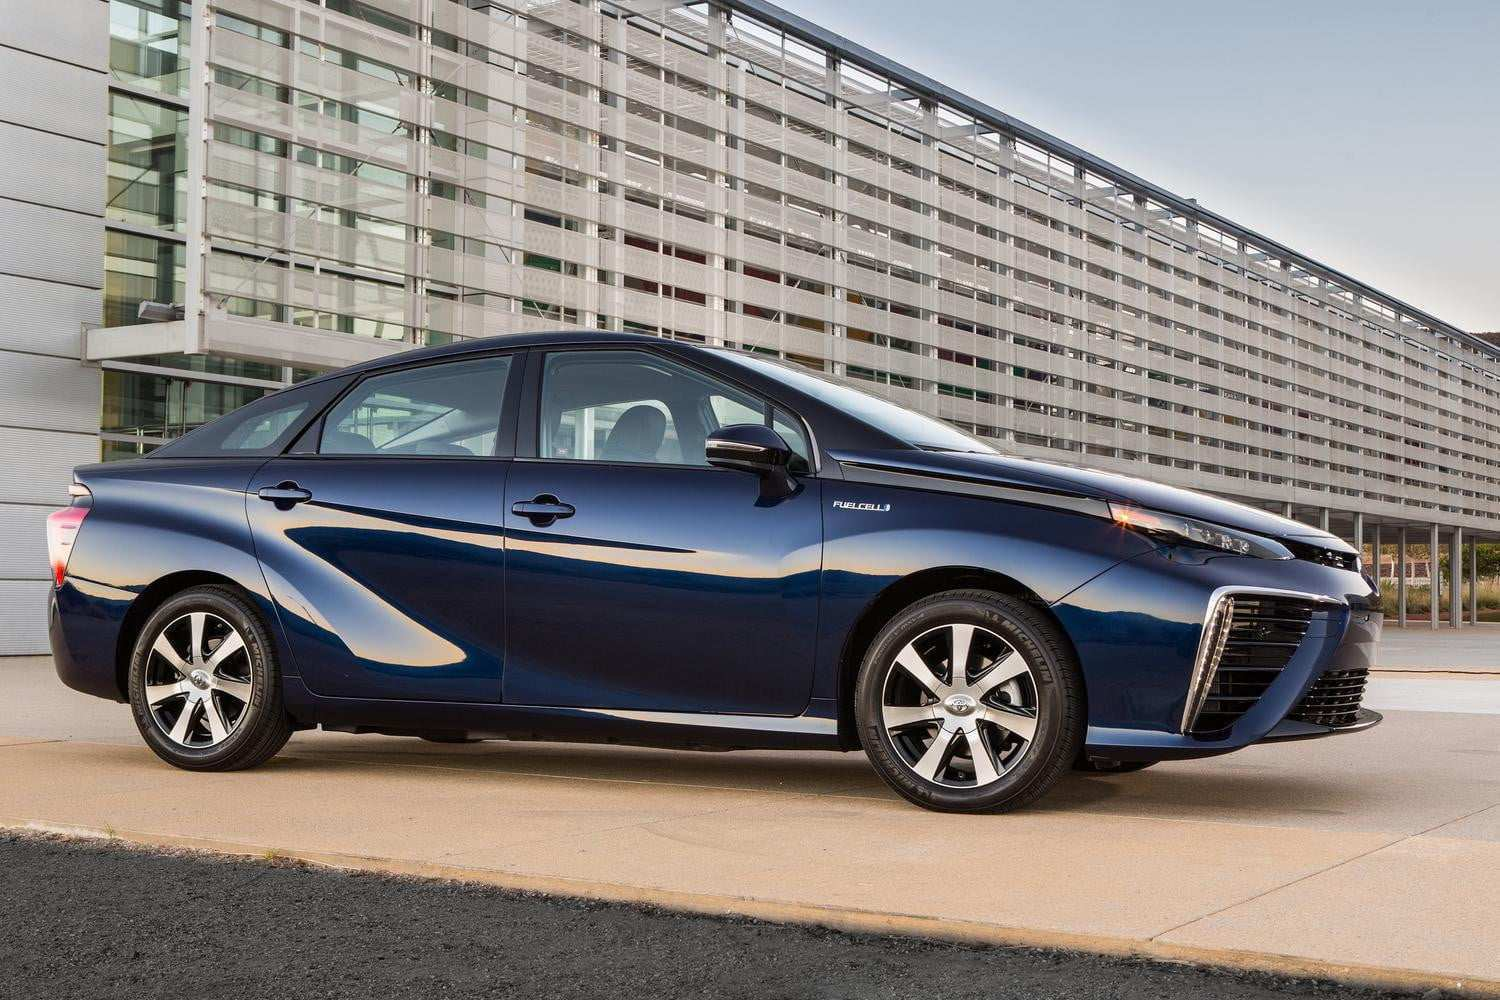 34 New Toyota Mirai 2020 2 Overview